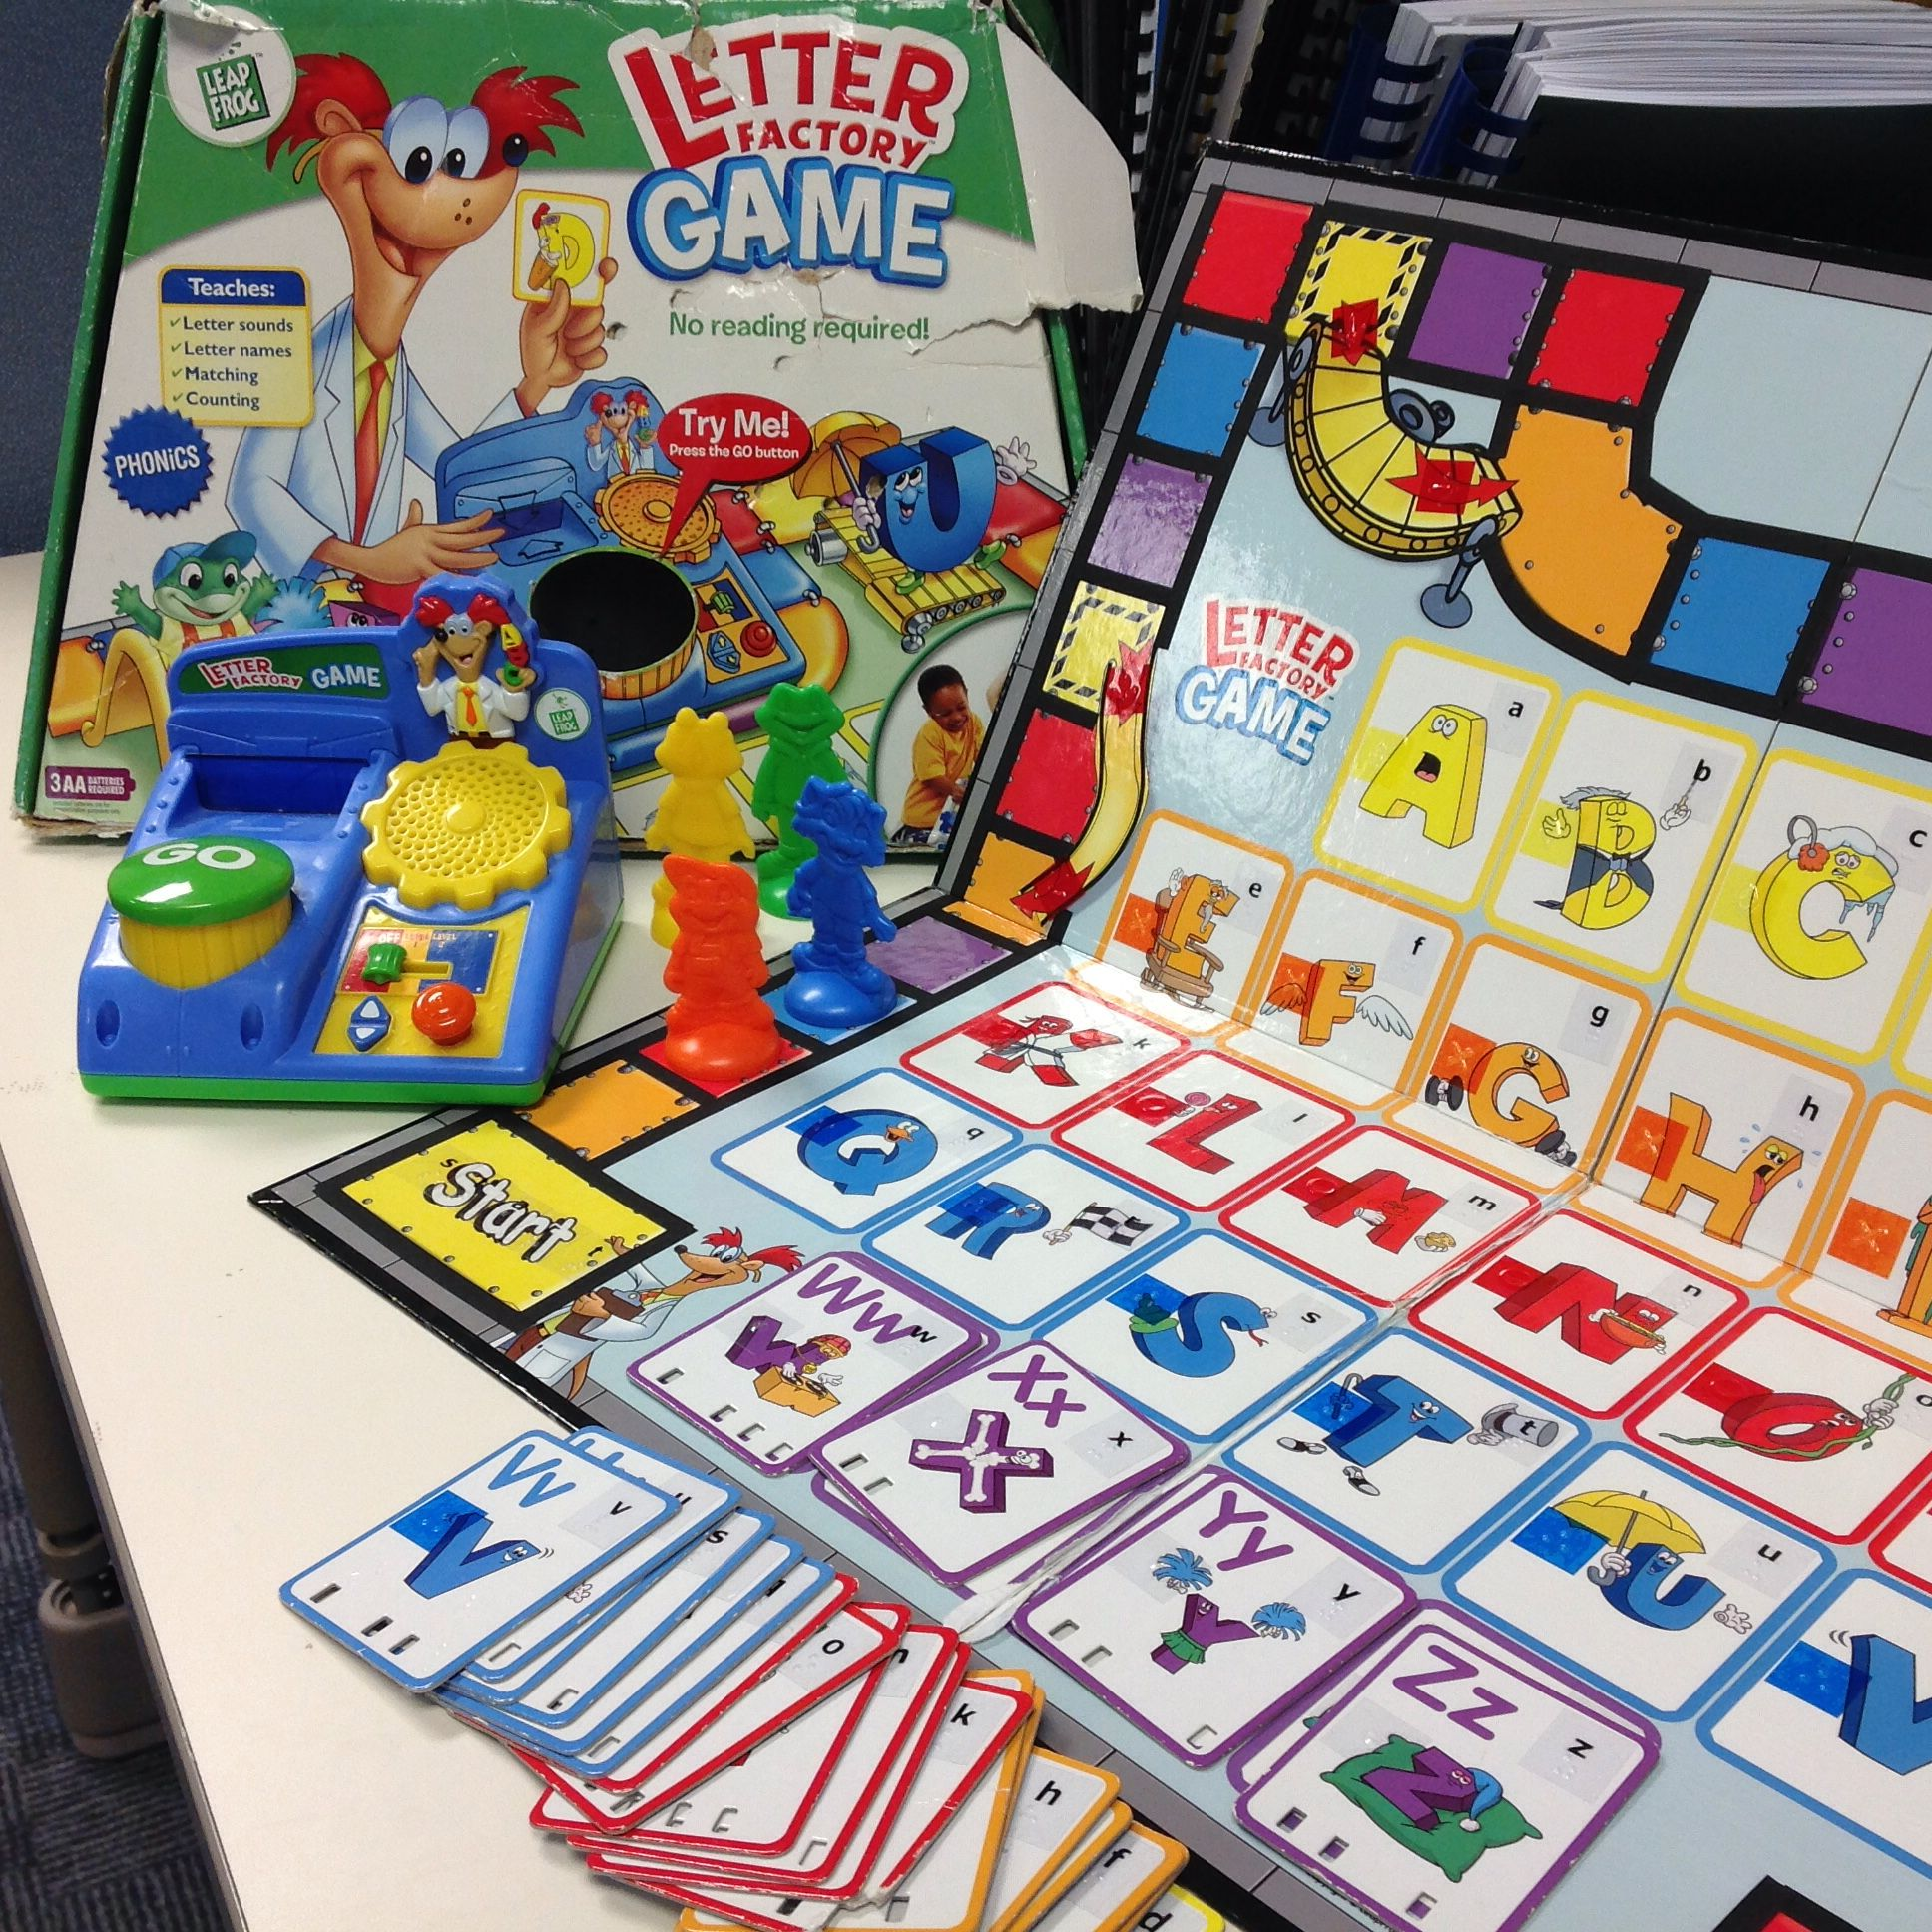 Letter Factory Game from Leap Frog. Very easy to adapt in Braille